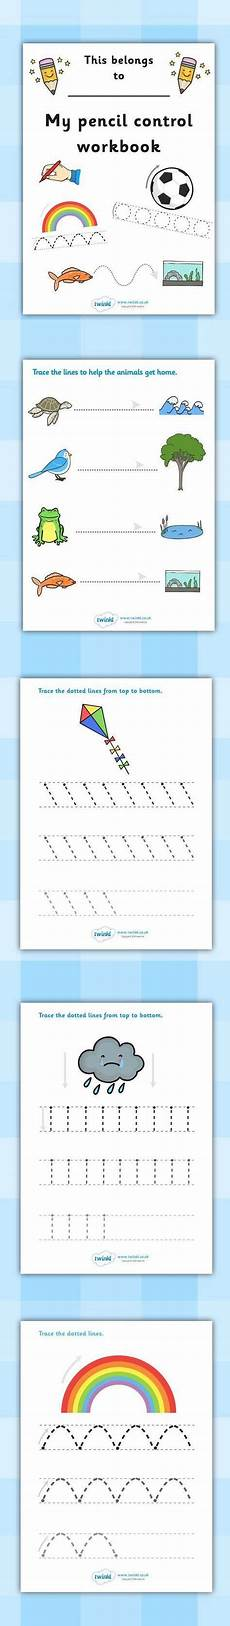 handwriting worksheets primary resources 21549 twinkl resources gt gt line handwriting worksheets gt gt printable resources for primary eyfs ks1